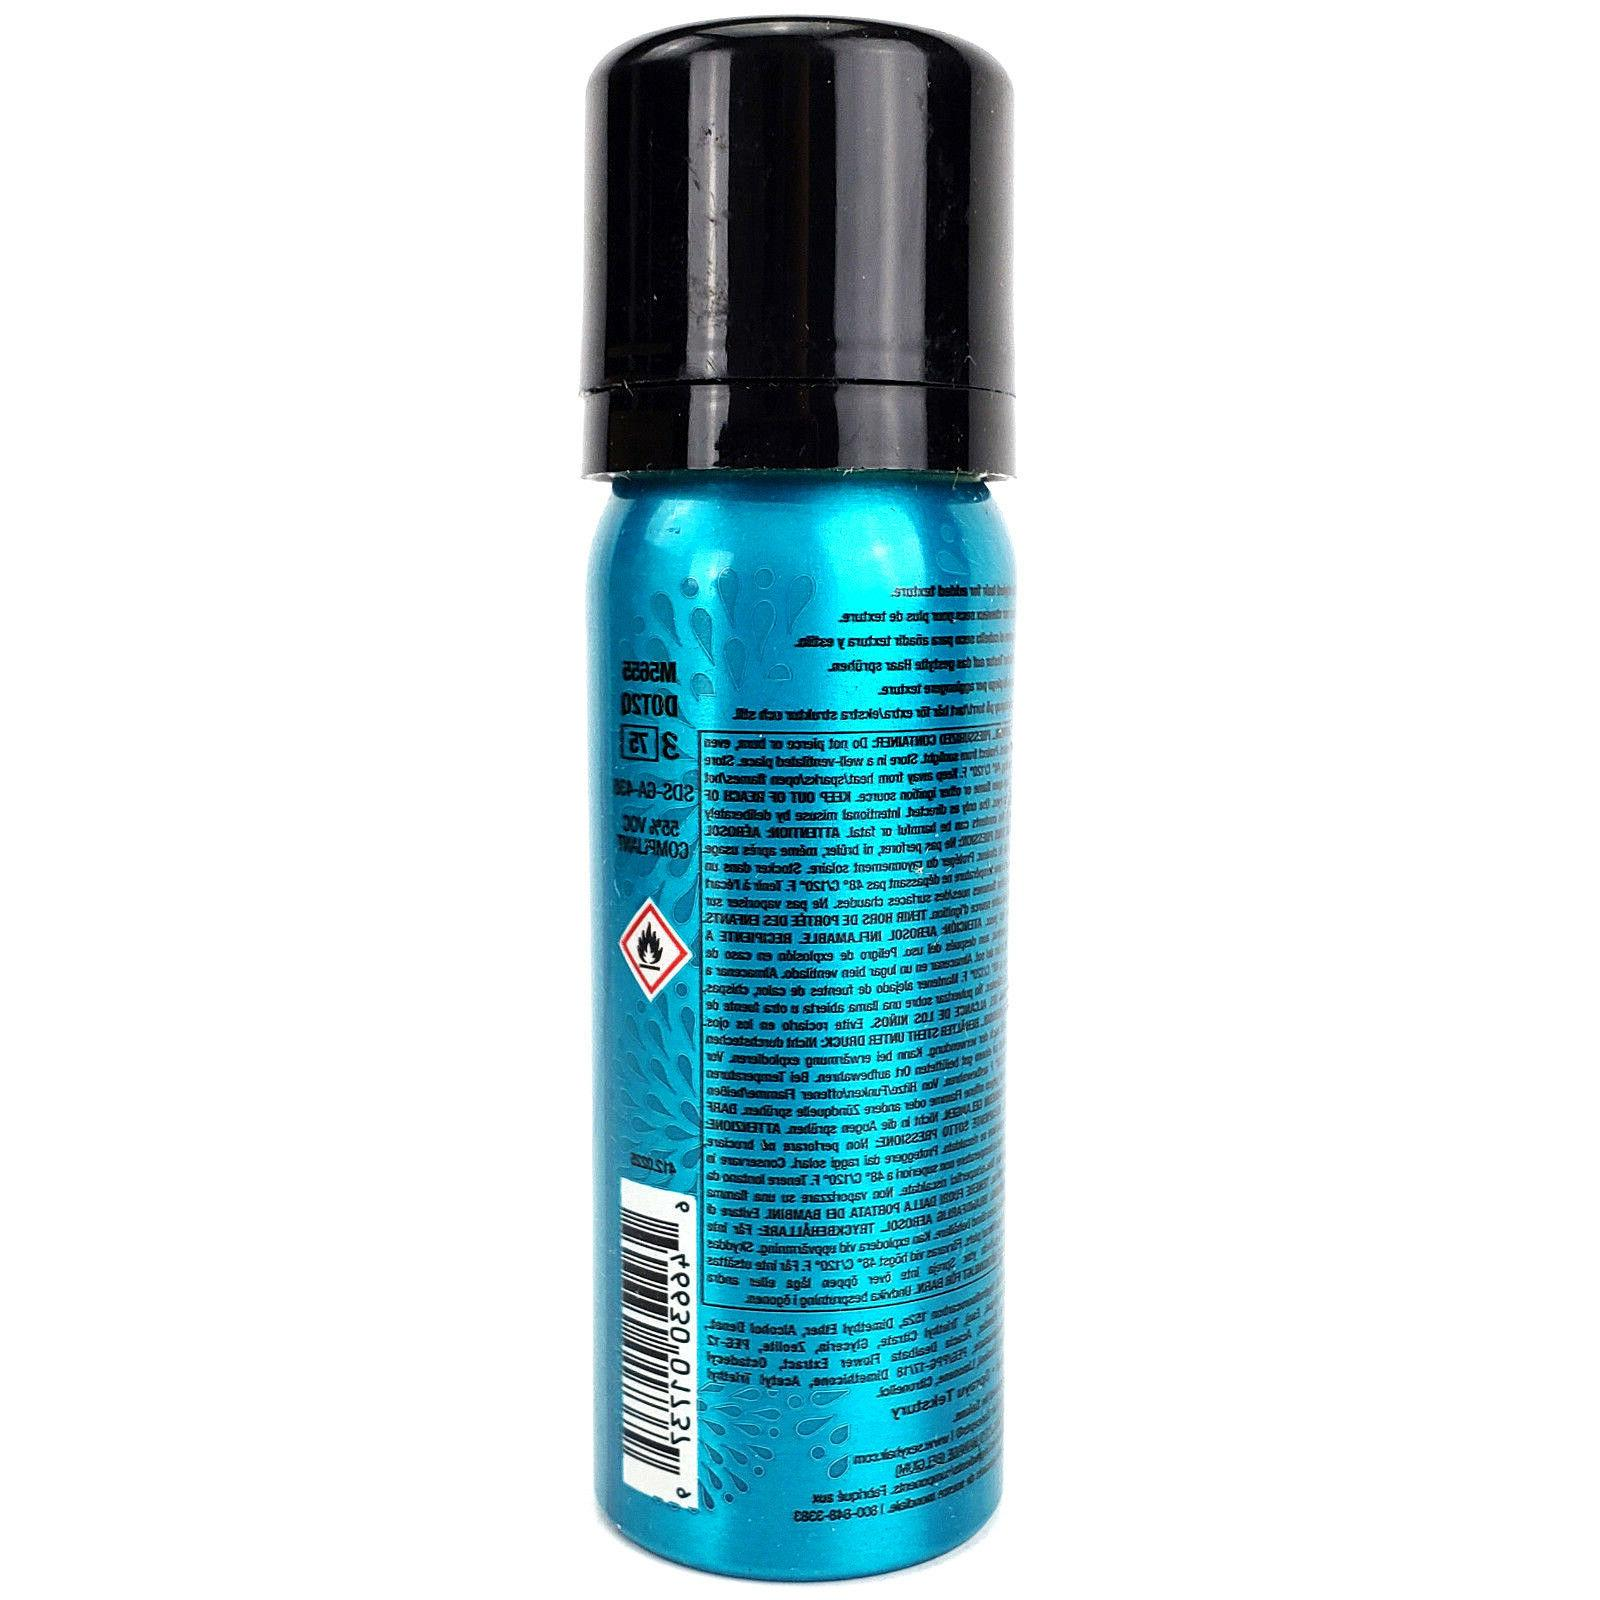 Healthy Dry Texture 1.7oz Travel Size